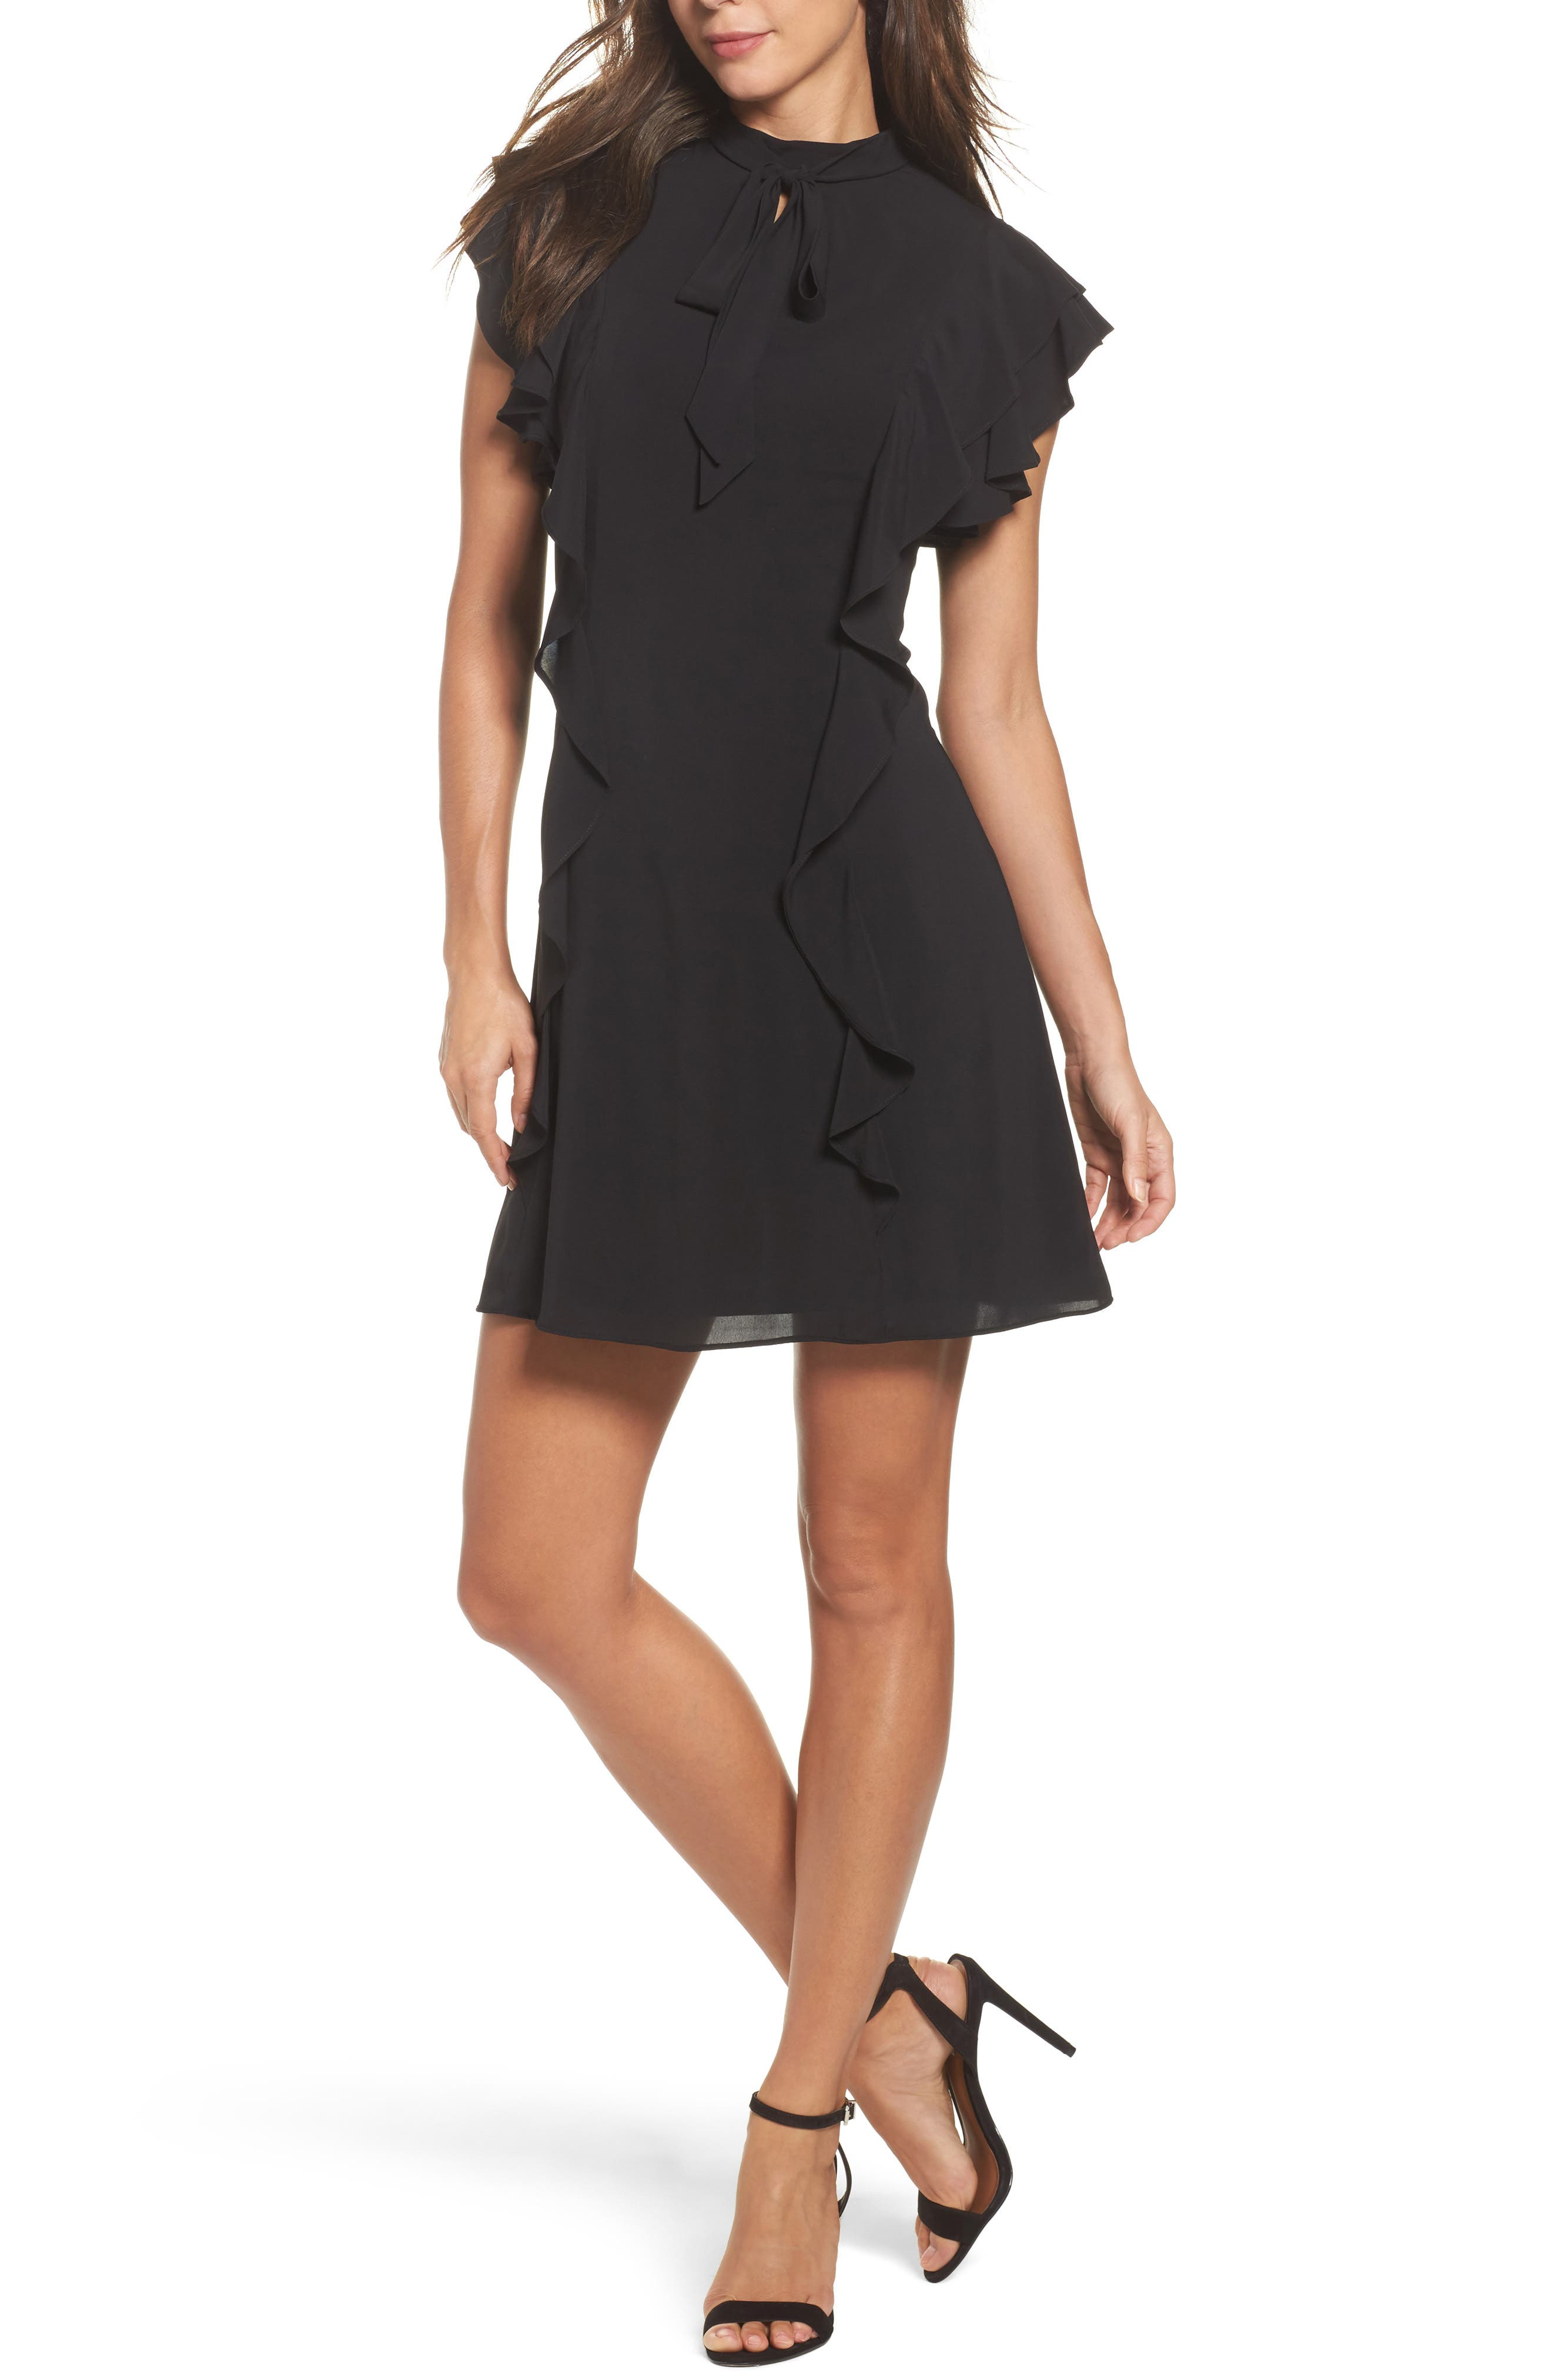 Alternate Image 1 Selected - Julia Jordan Ruffle Tie Neck Sheath Dress